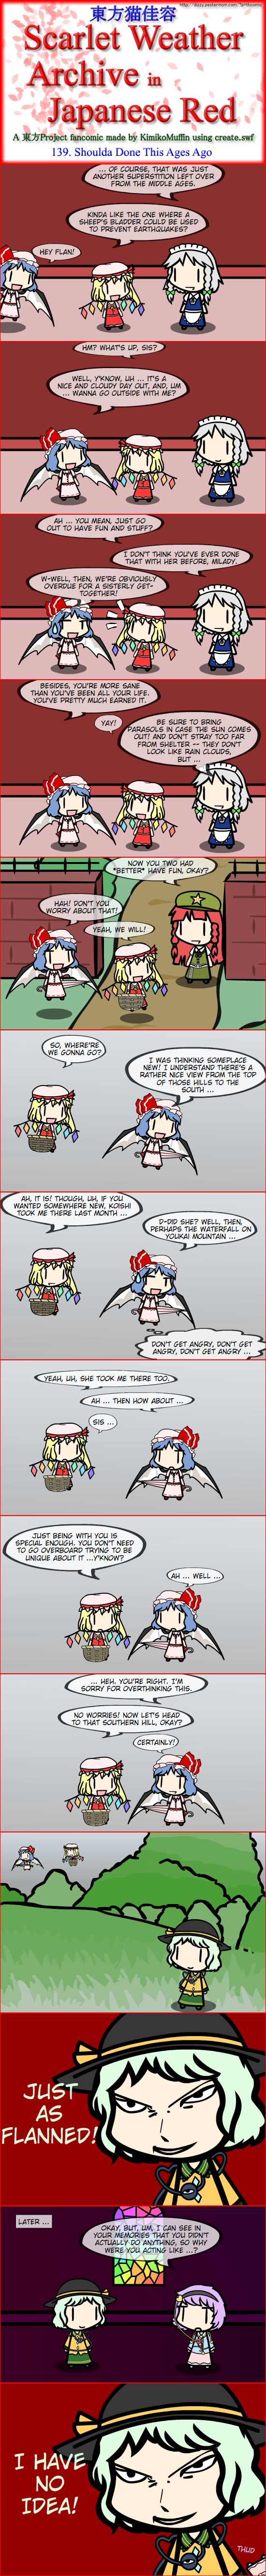 Touhou Nekokayou: Scarlet Weather Archive in Japanese Red #139